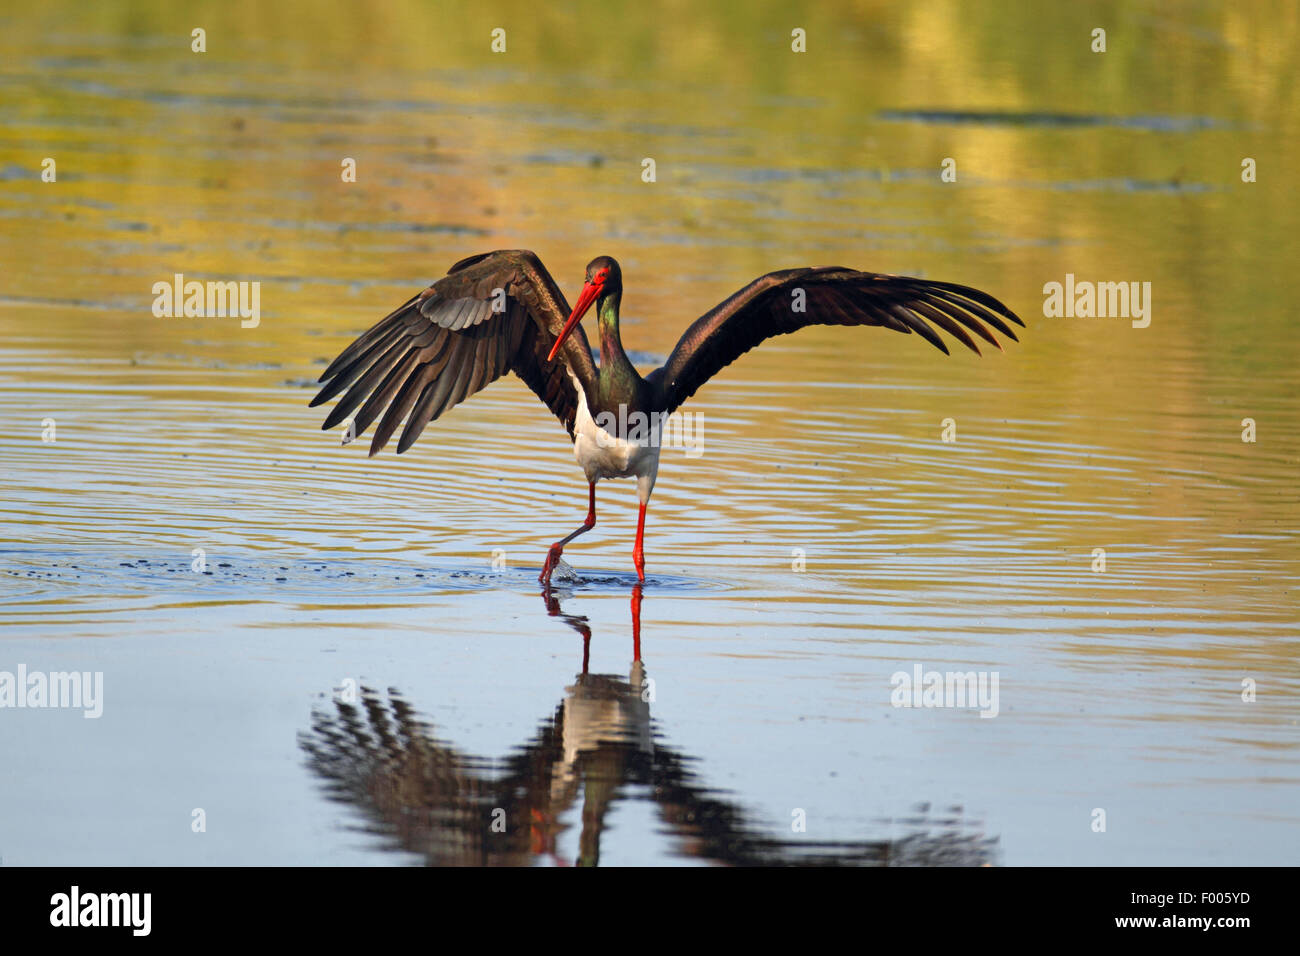 black stork (Ciconia nigra), looks for fishes in shallow water, Greece, Lesbos - Stock Image